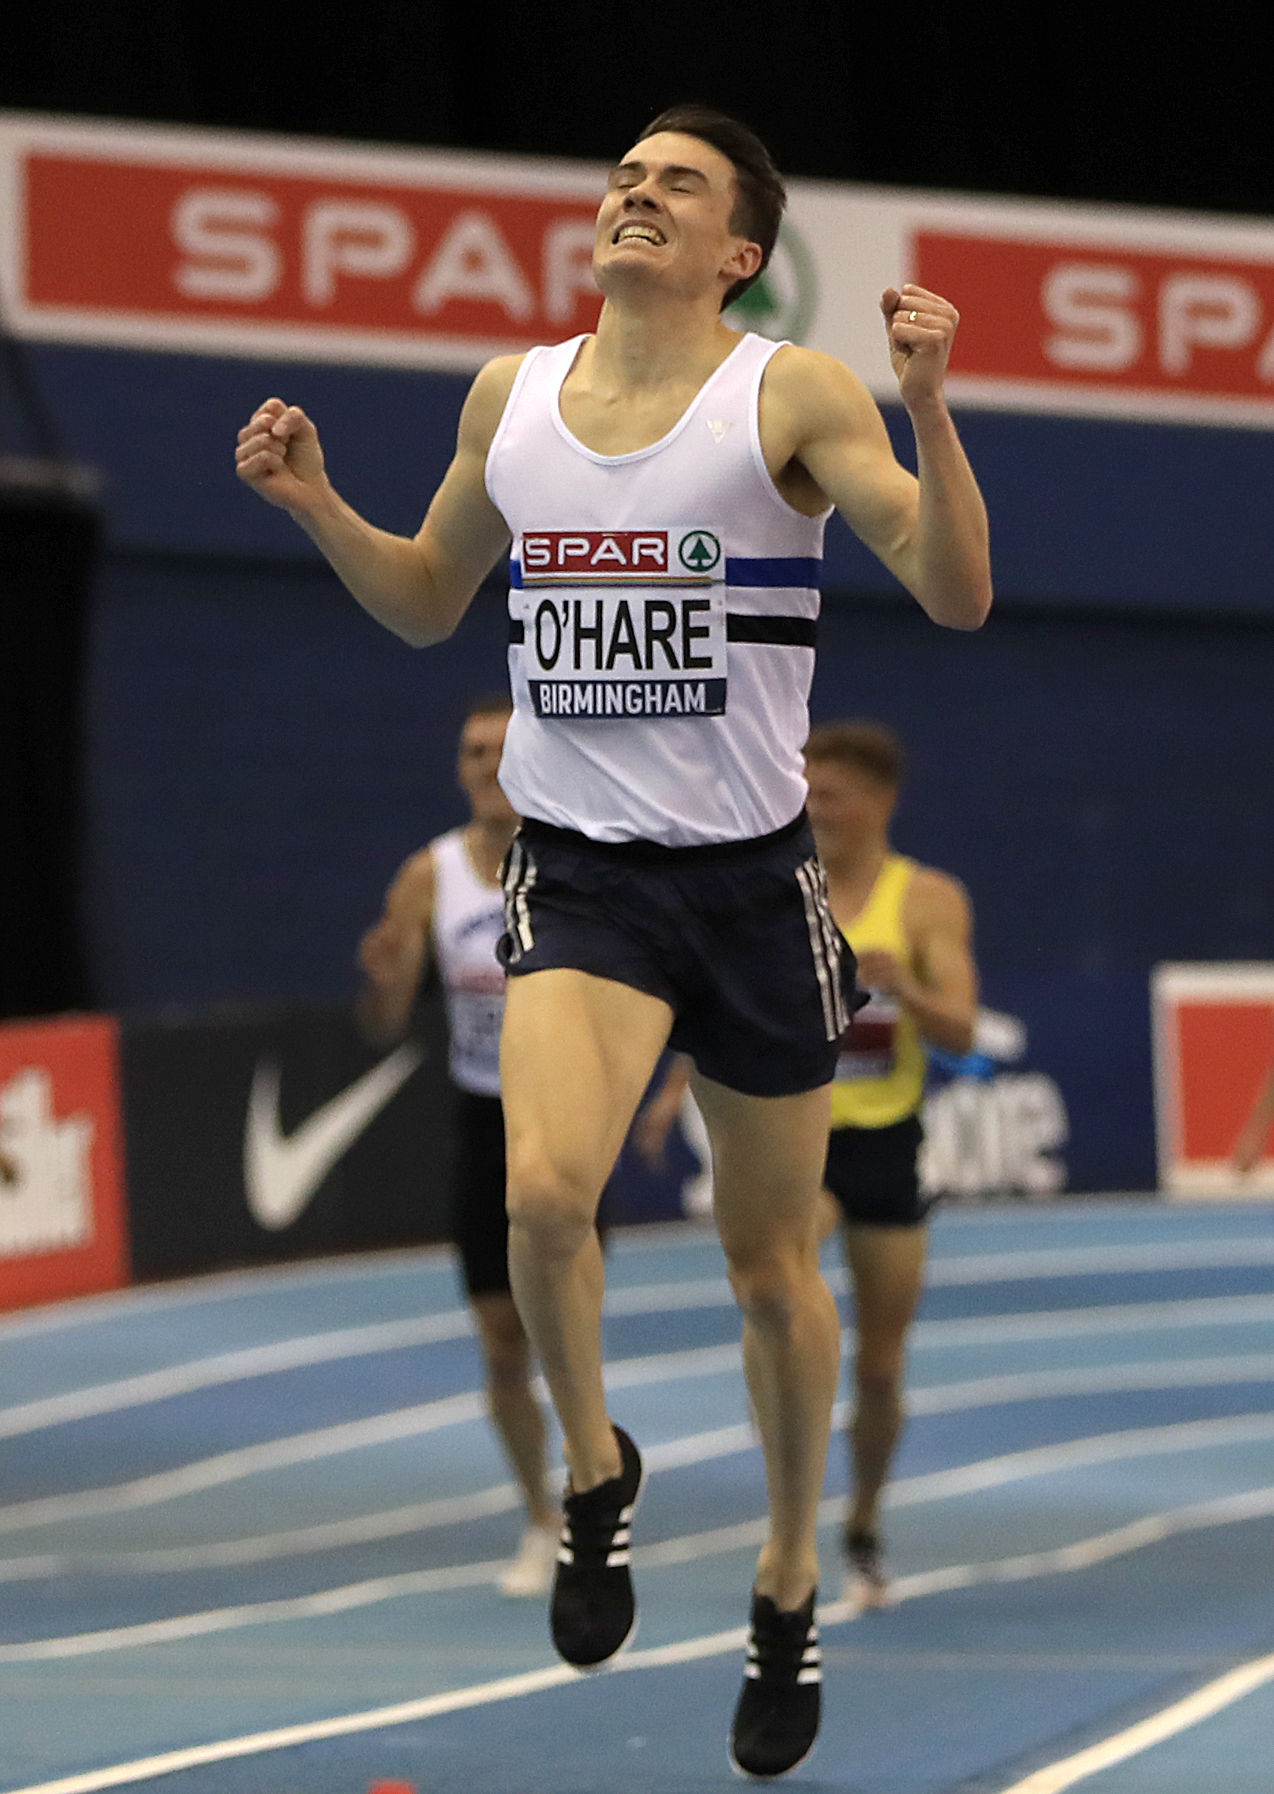 Chris O'Hare celebrates winning the Men's 3000 metres. Photo: Simon Cooper/PA Wire